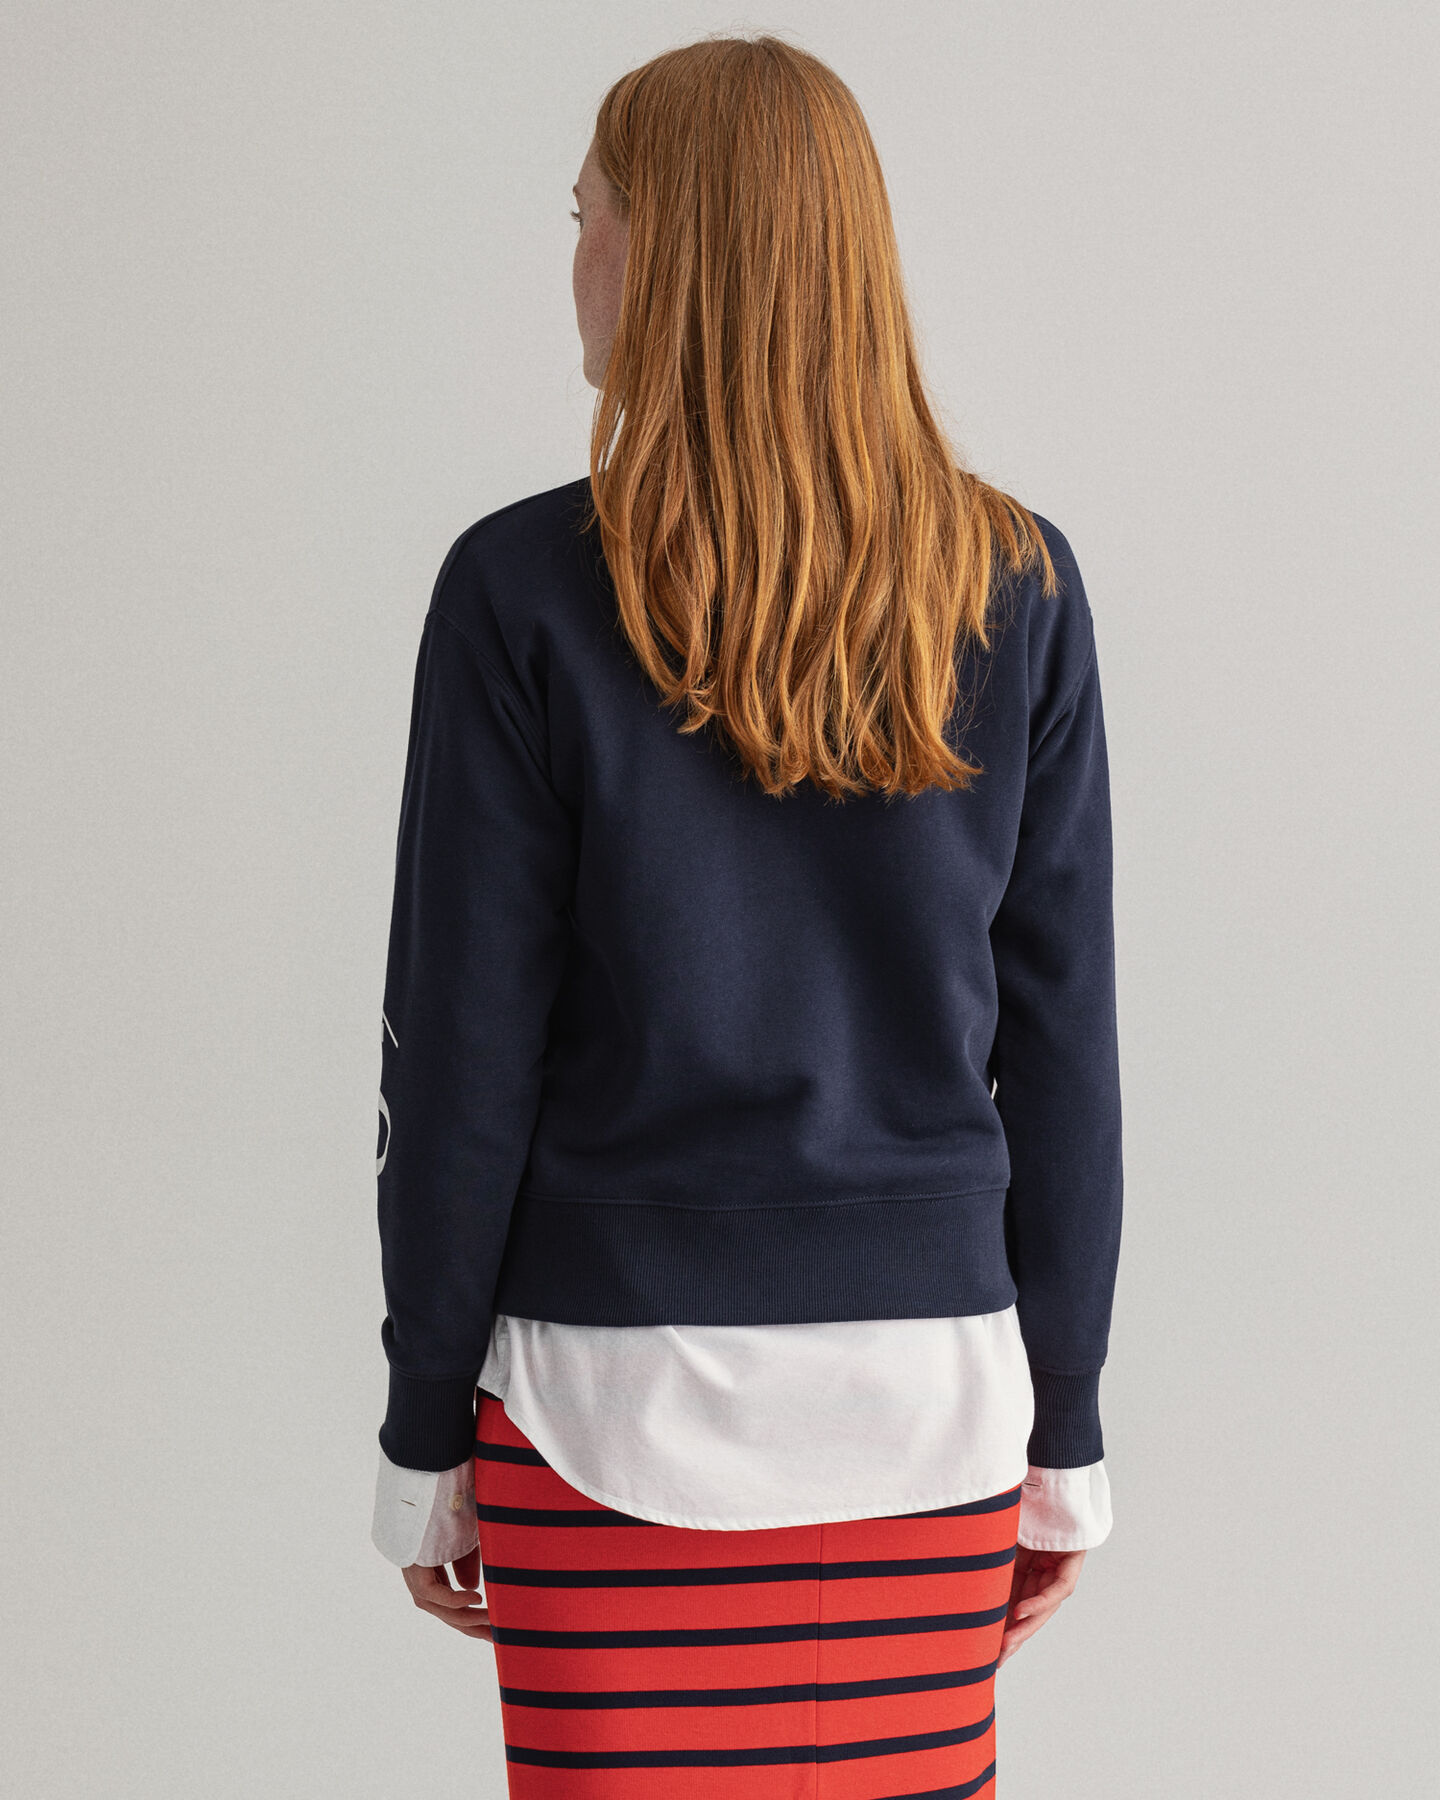 Nautical Rundhals-Sweatshirt